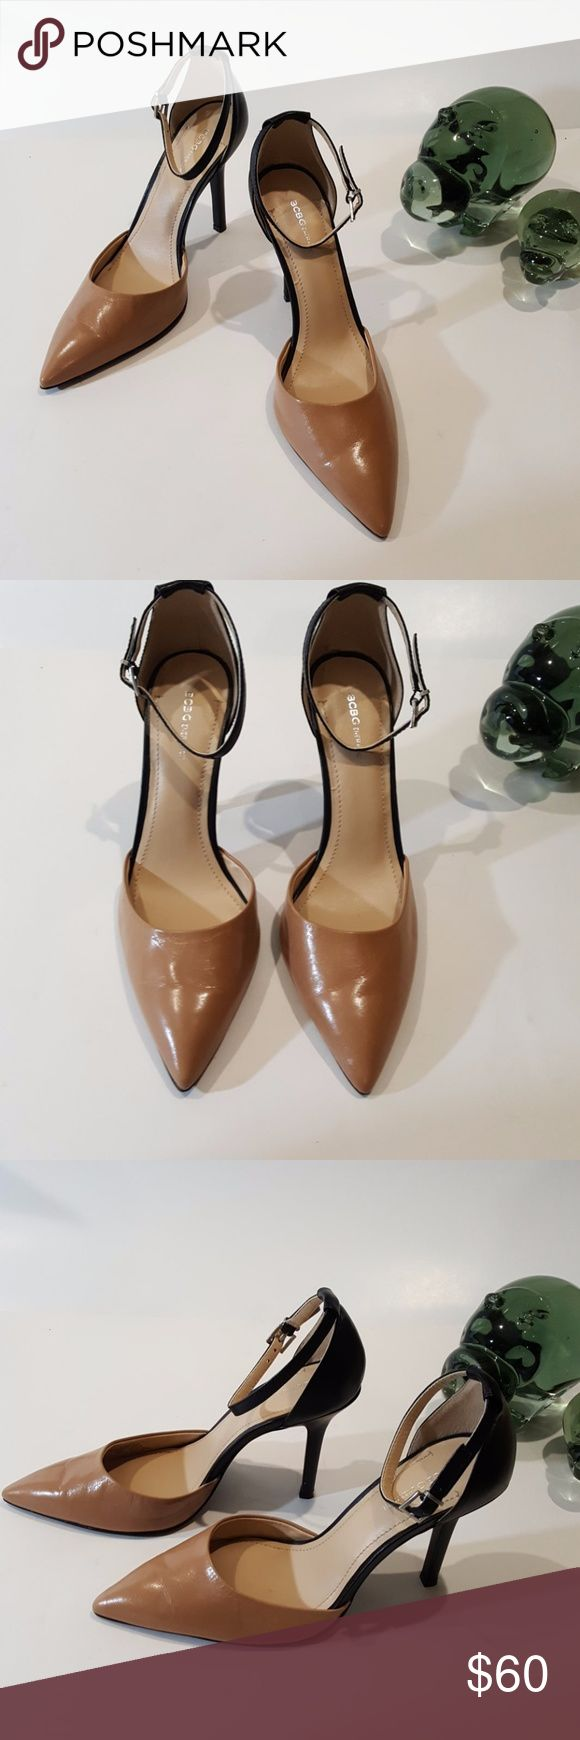 NWOT BCBGeneration Leather Two Tone Heels Size 9.5 BCBGeneration Women's Leather Two Tone Heels Size 9.5 Colour Tan & Black Pointy Toe Tan Colour On Front, Black On Back Adjustable Ankle Strap Heel Height 4.5 Inchs NWOT BCBGeneration Shoes Heels